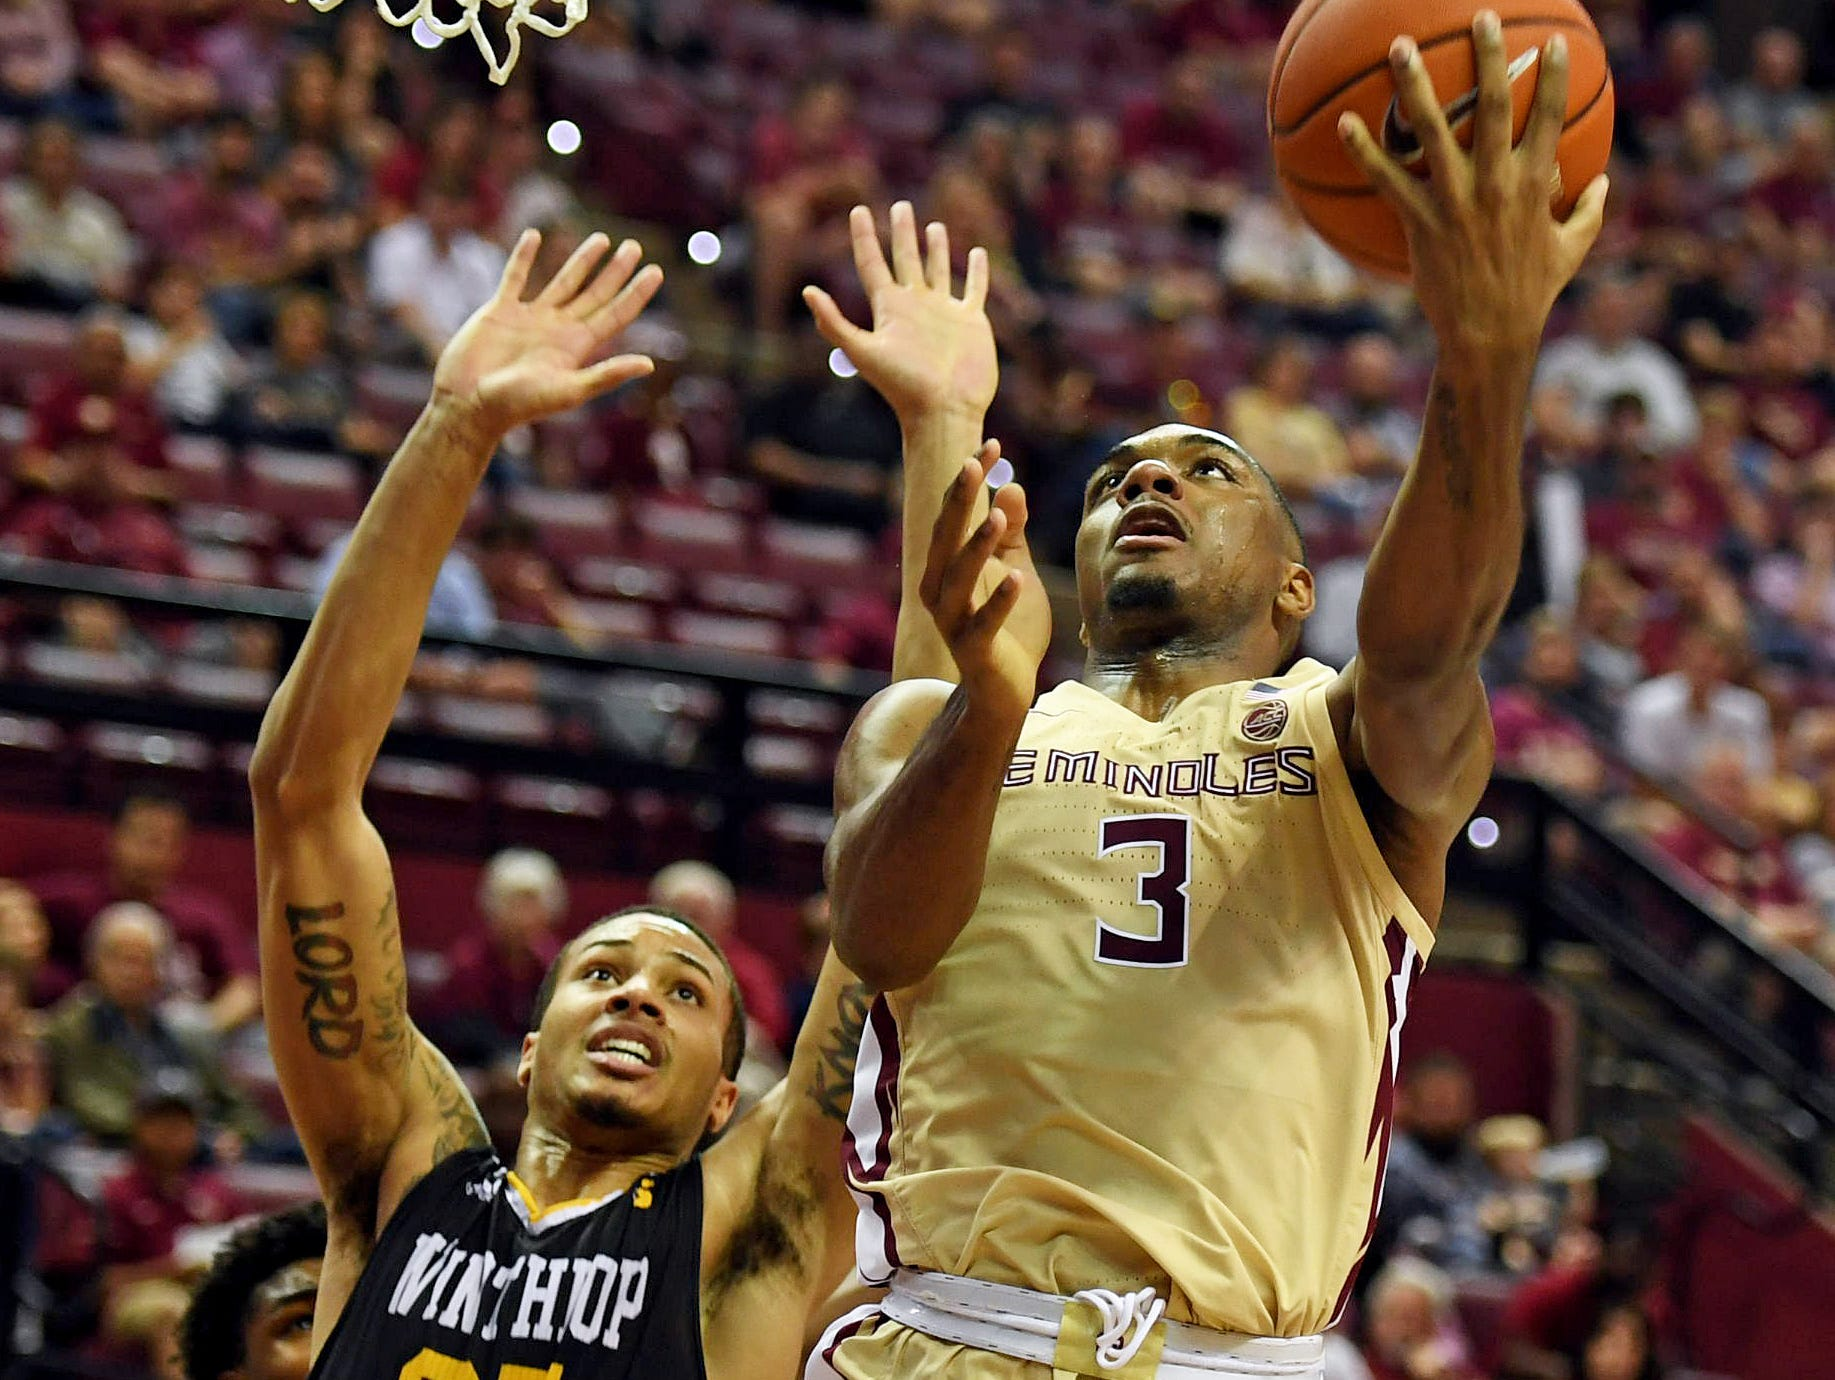 Jan 1, 2019; Tallahassee, FL, USA; Florida State Seminoles guard Trent Forrest (3) shoots the ball past past Winthrop Eagles forward Josh Ferguson (25) during the game at Donald L. Tucker Center. Mandatory Credit: Melina Myers-USA TODAY Sports